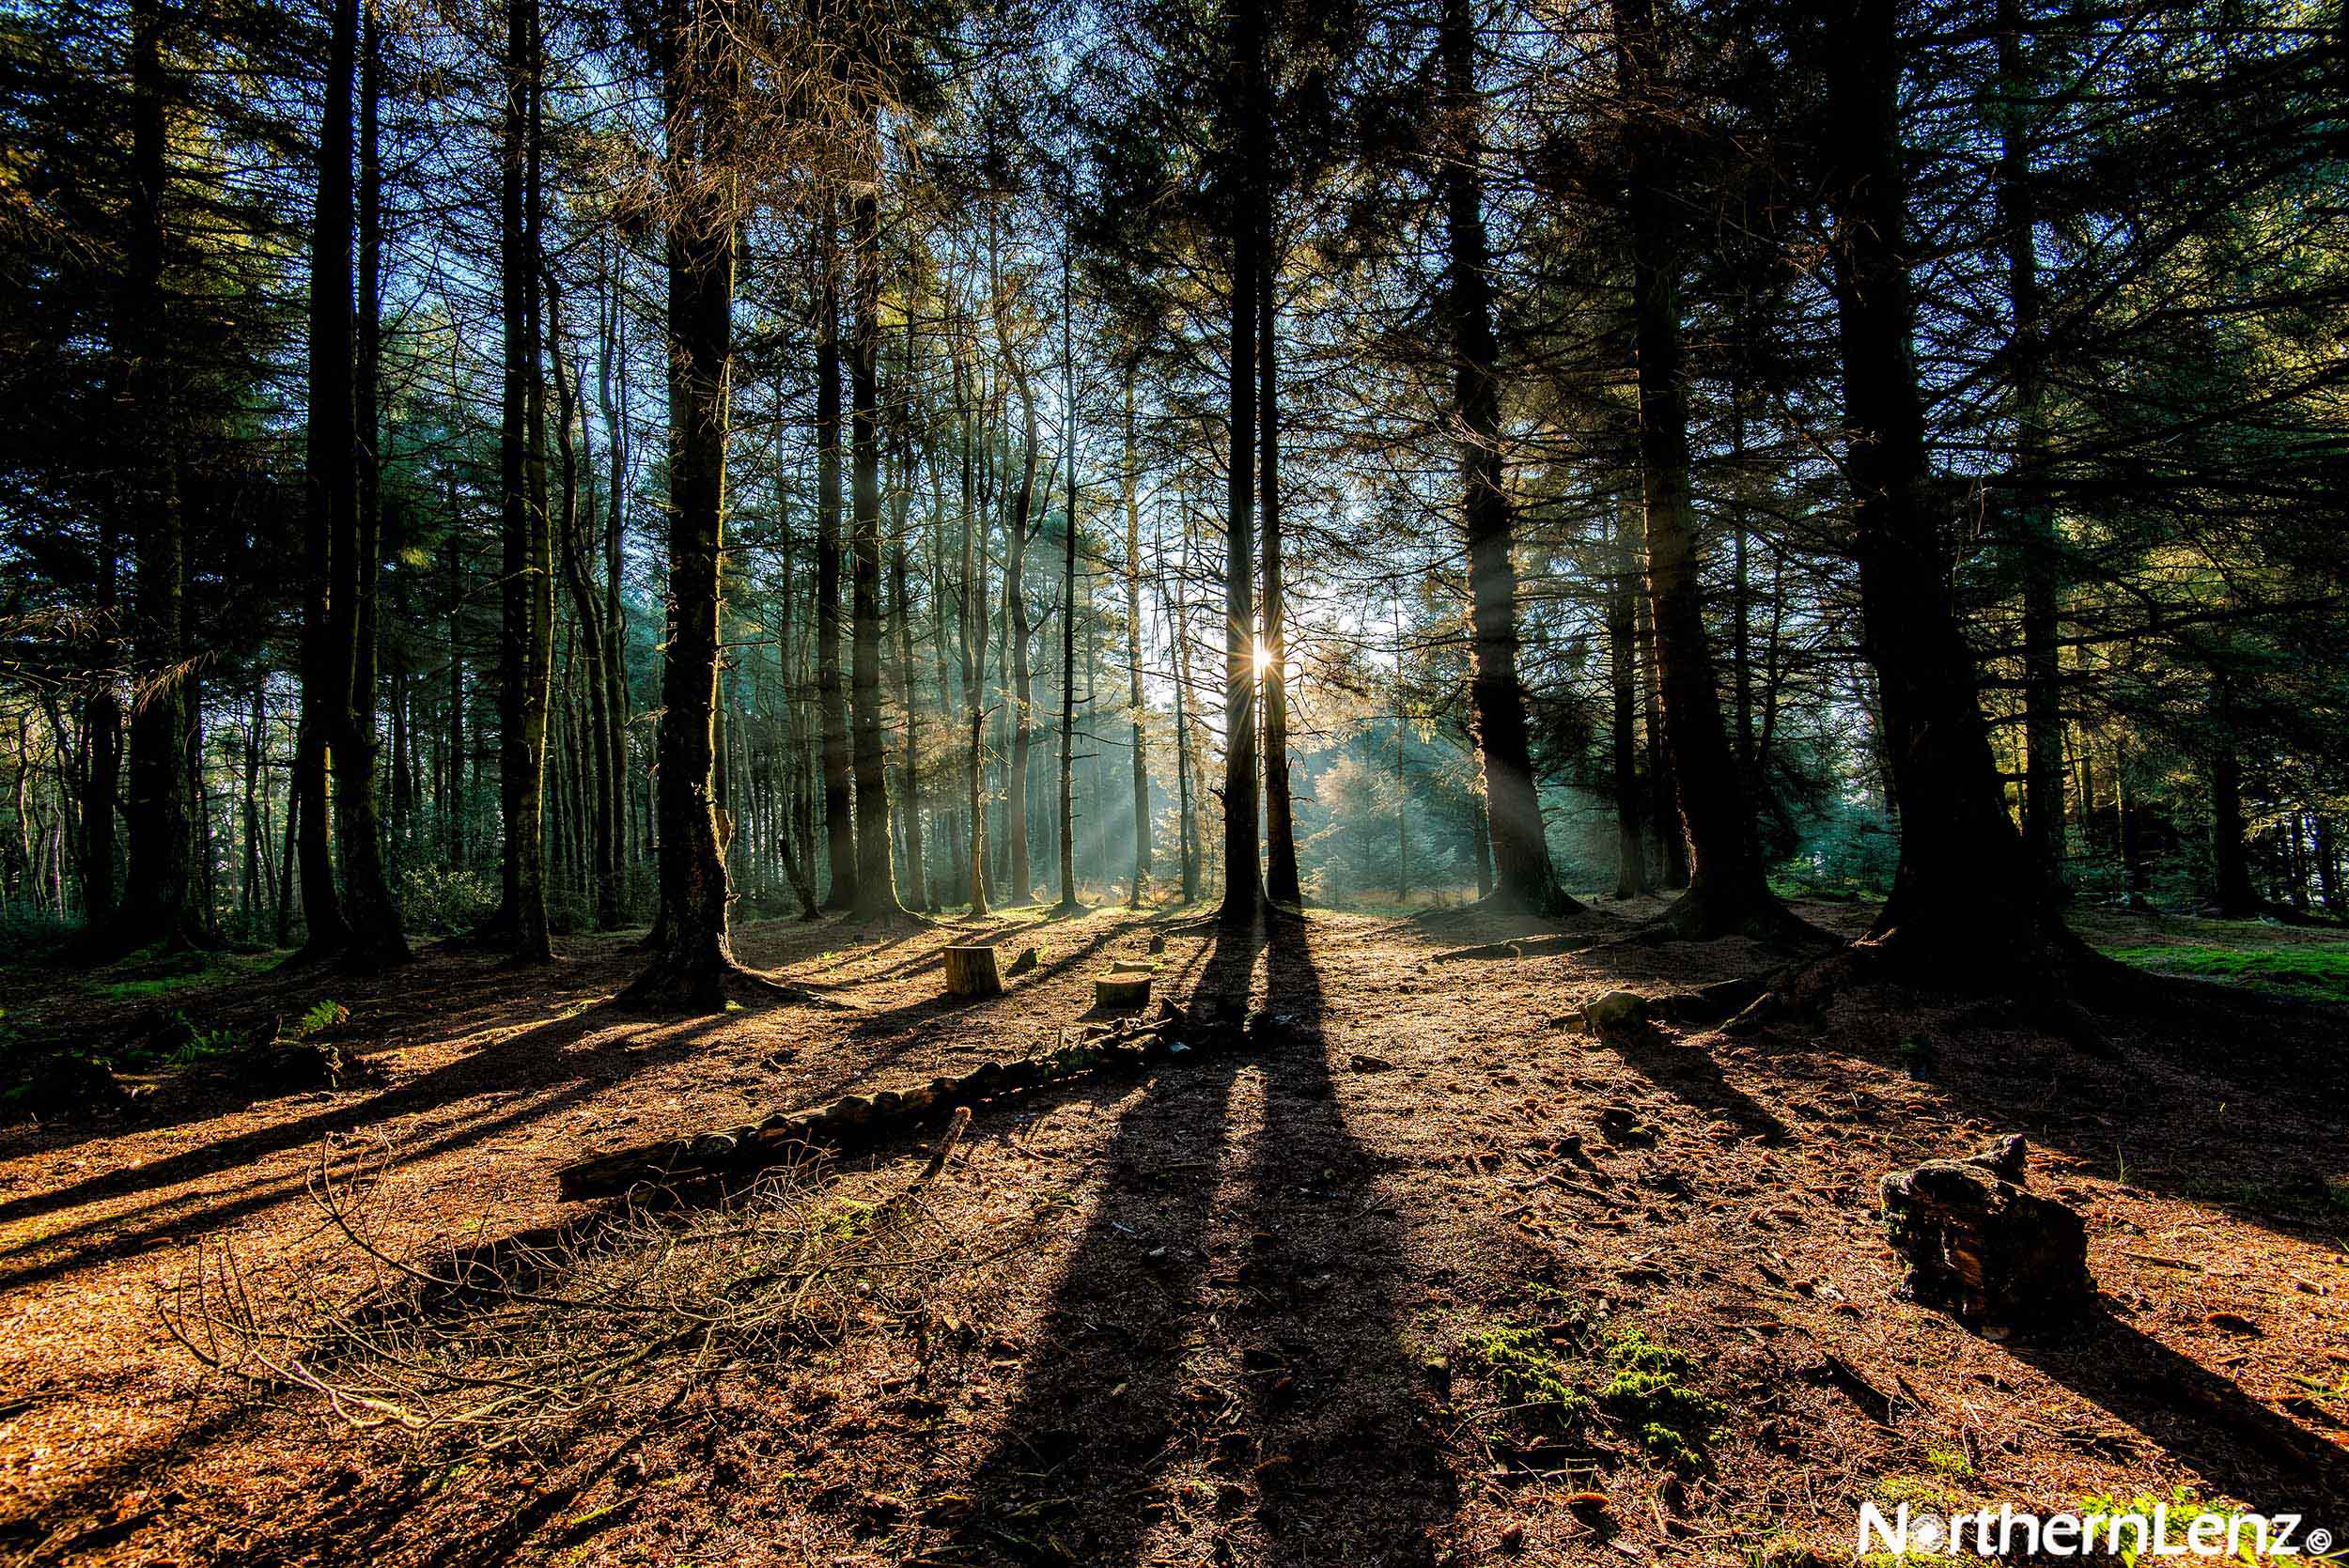 Magnificent light at Aitken Wood, Pendle which created such long dark shadows  Image Ref: MT07